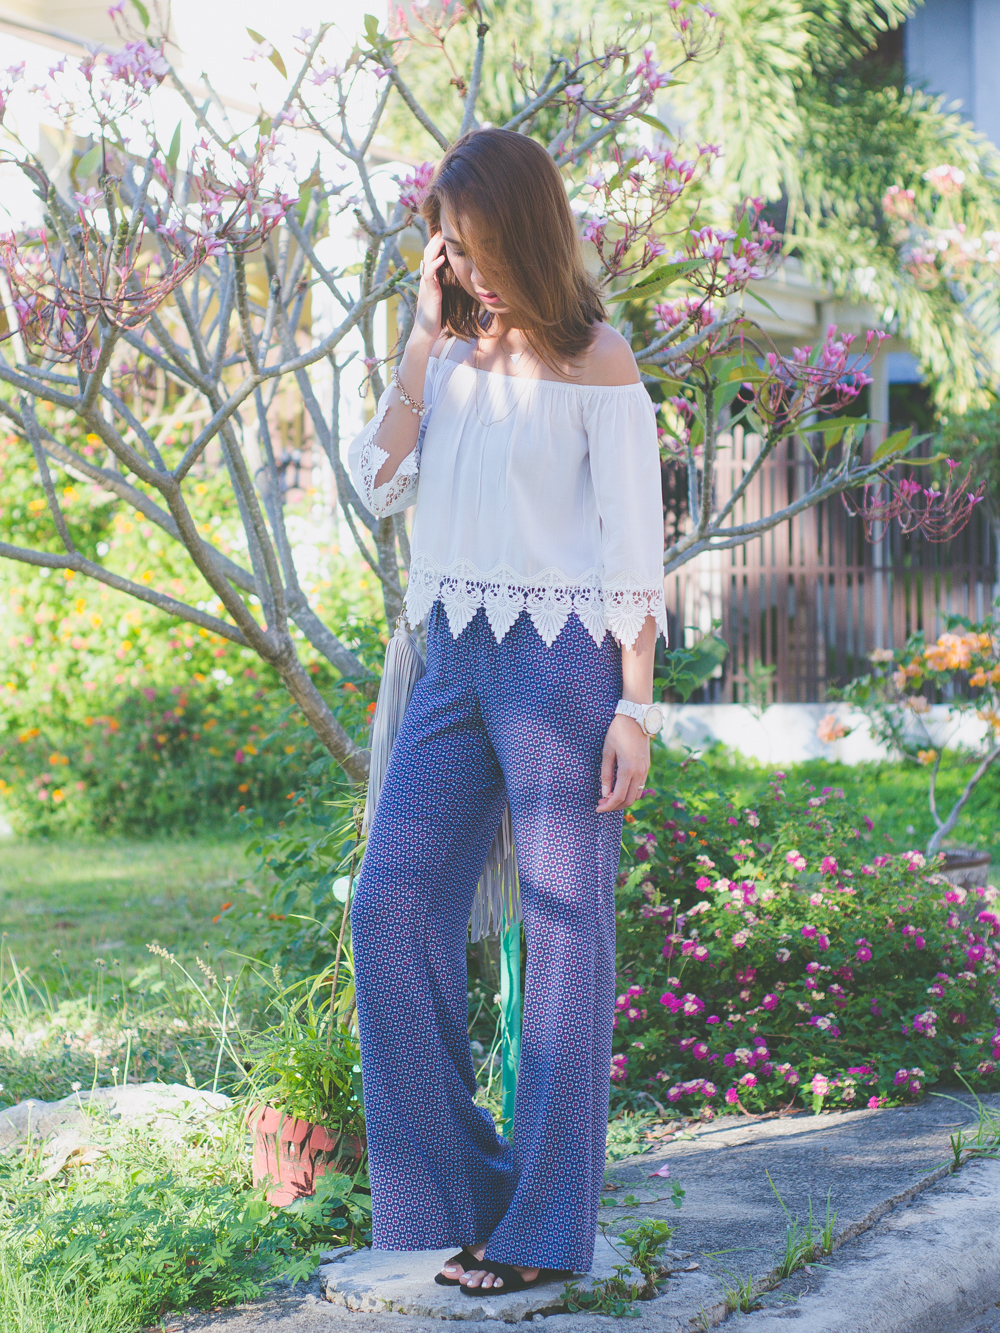 Cebu Fashion Blogger, Blog, Outfit, Style, Boho Chic, Bohemian outfit, Philippine blogger, Summer outfits in the Philippines, Cebu Blogger, Off shoulder top, how to wear palazzo pants, fringe bag, H&M fringe bag